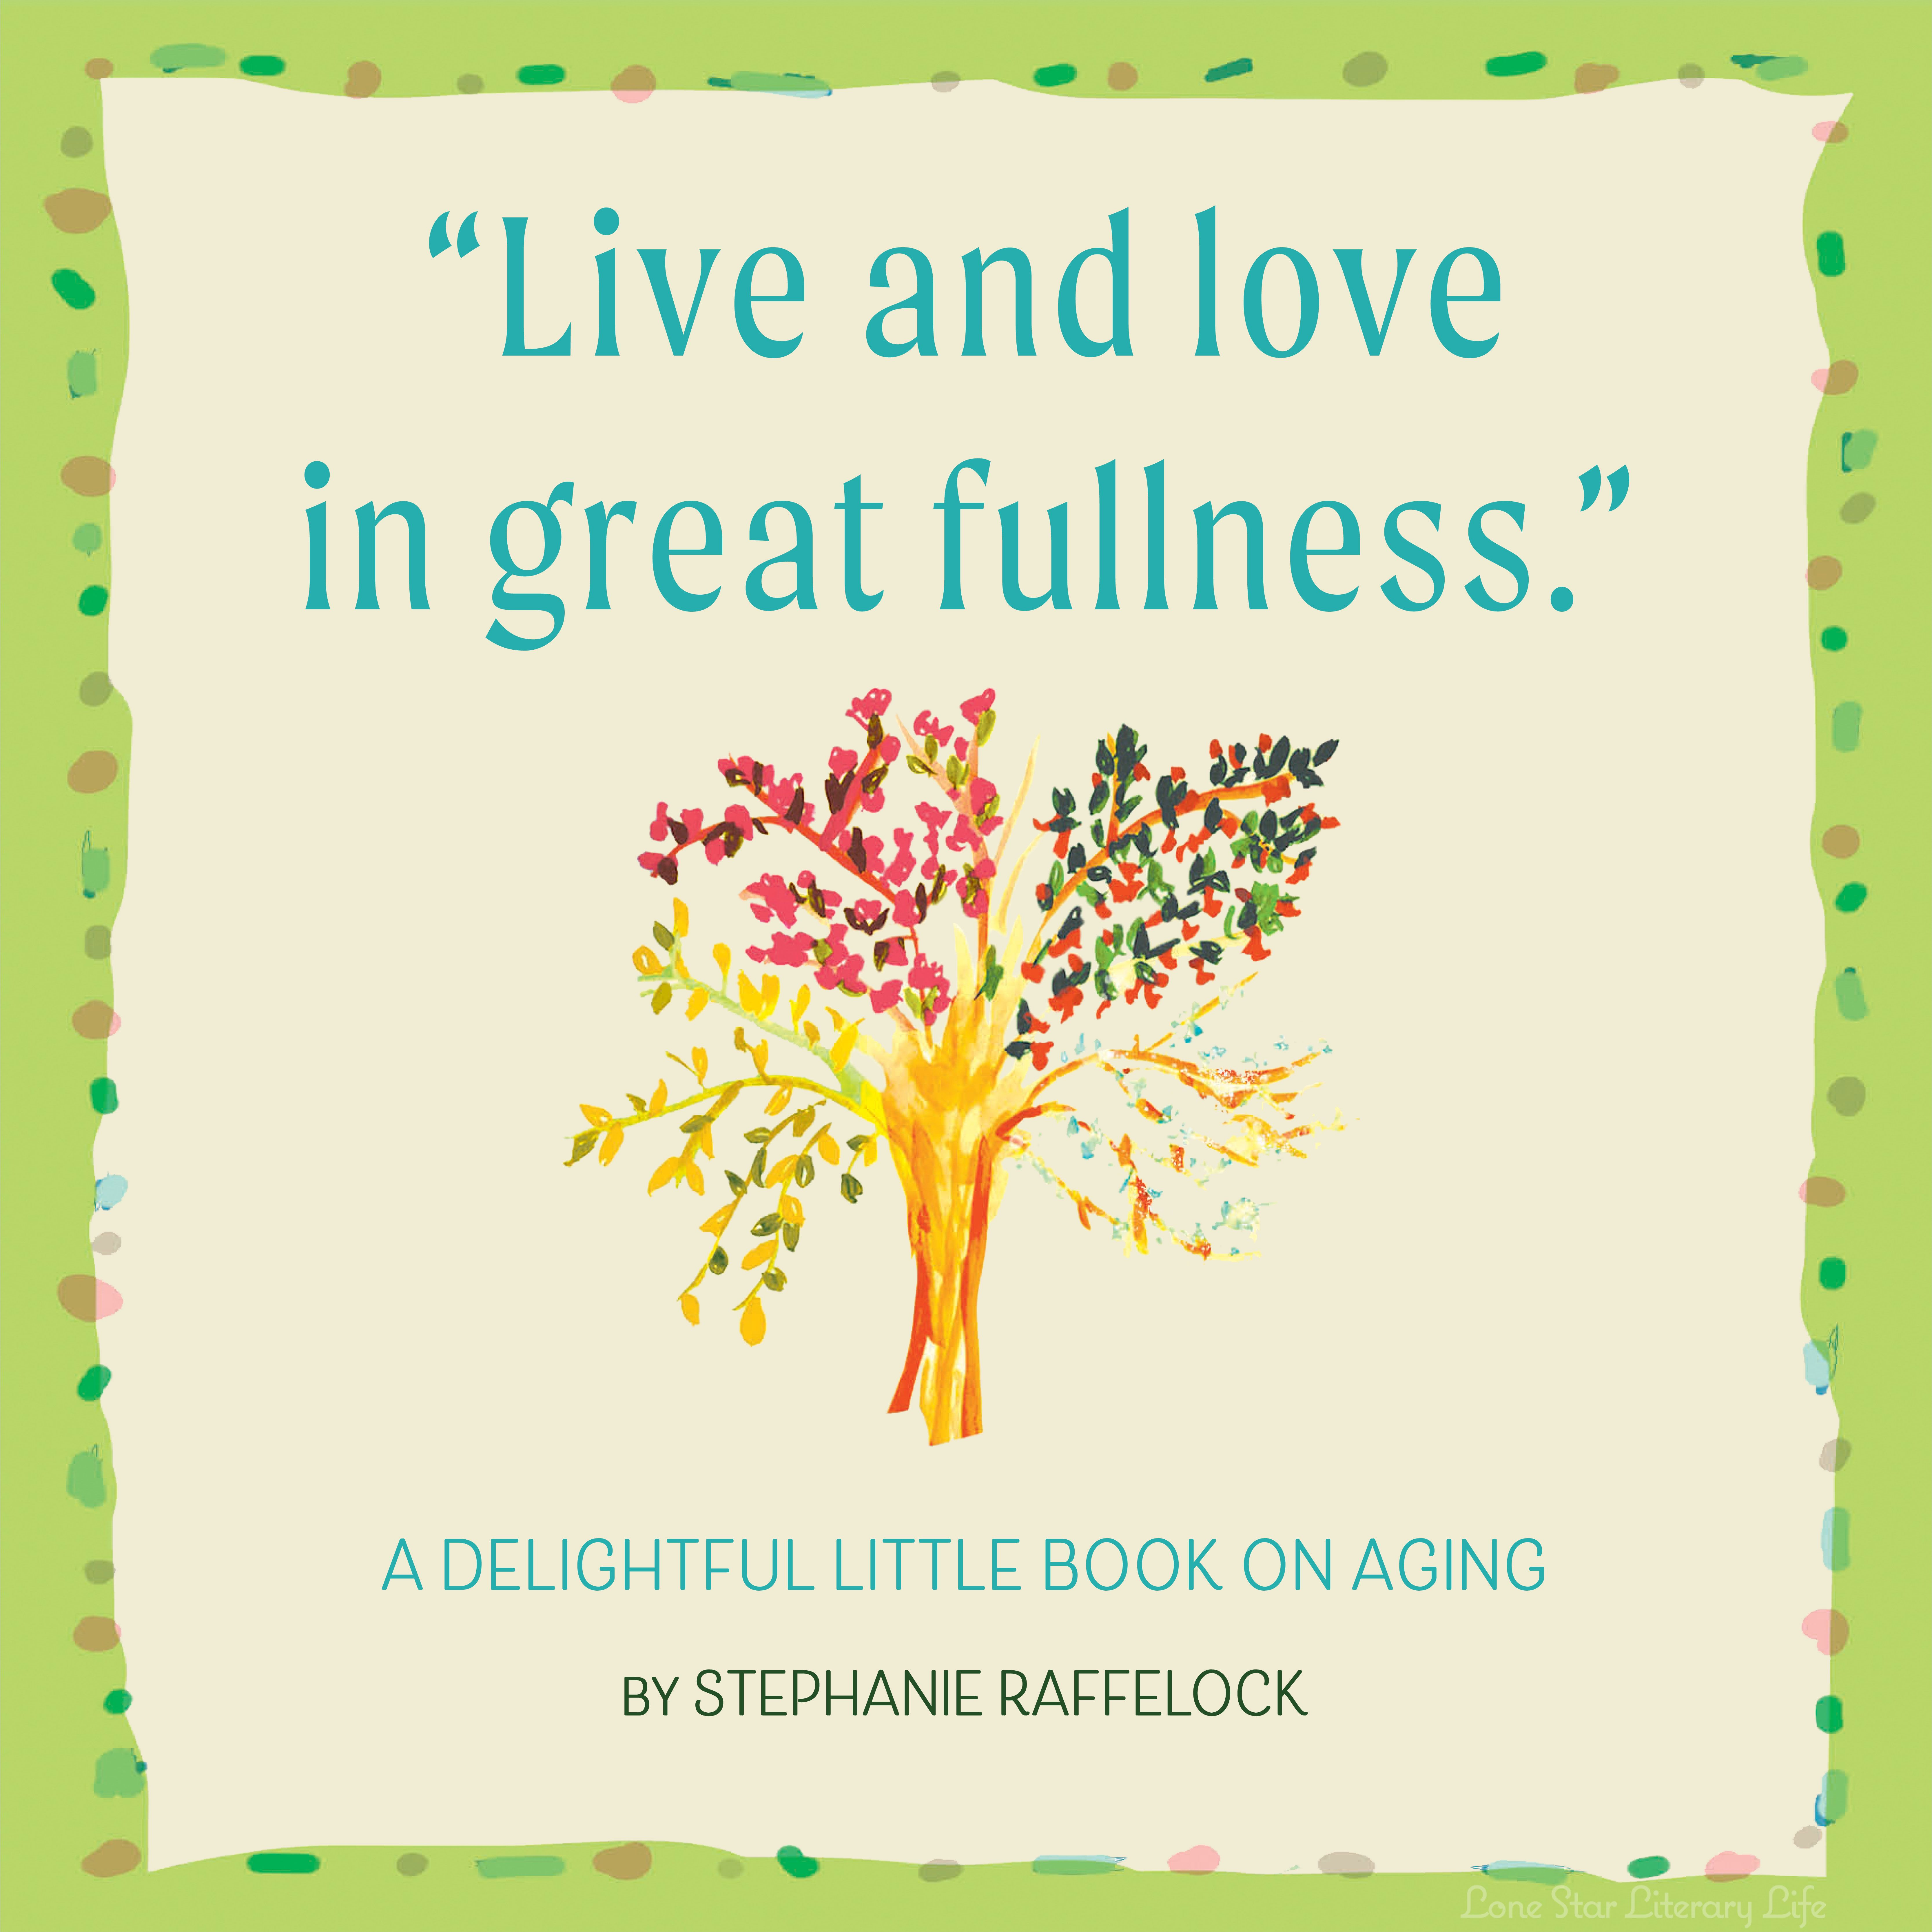 Live and love in great fulness